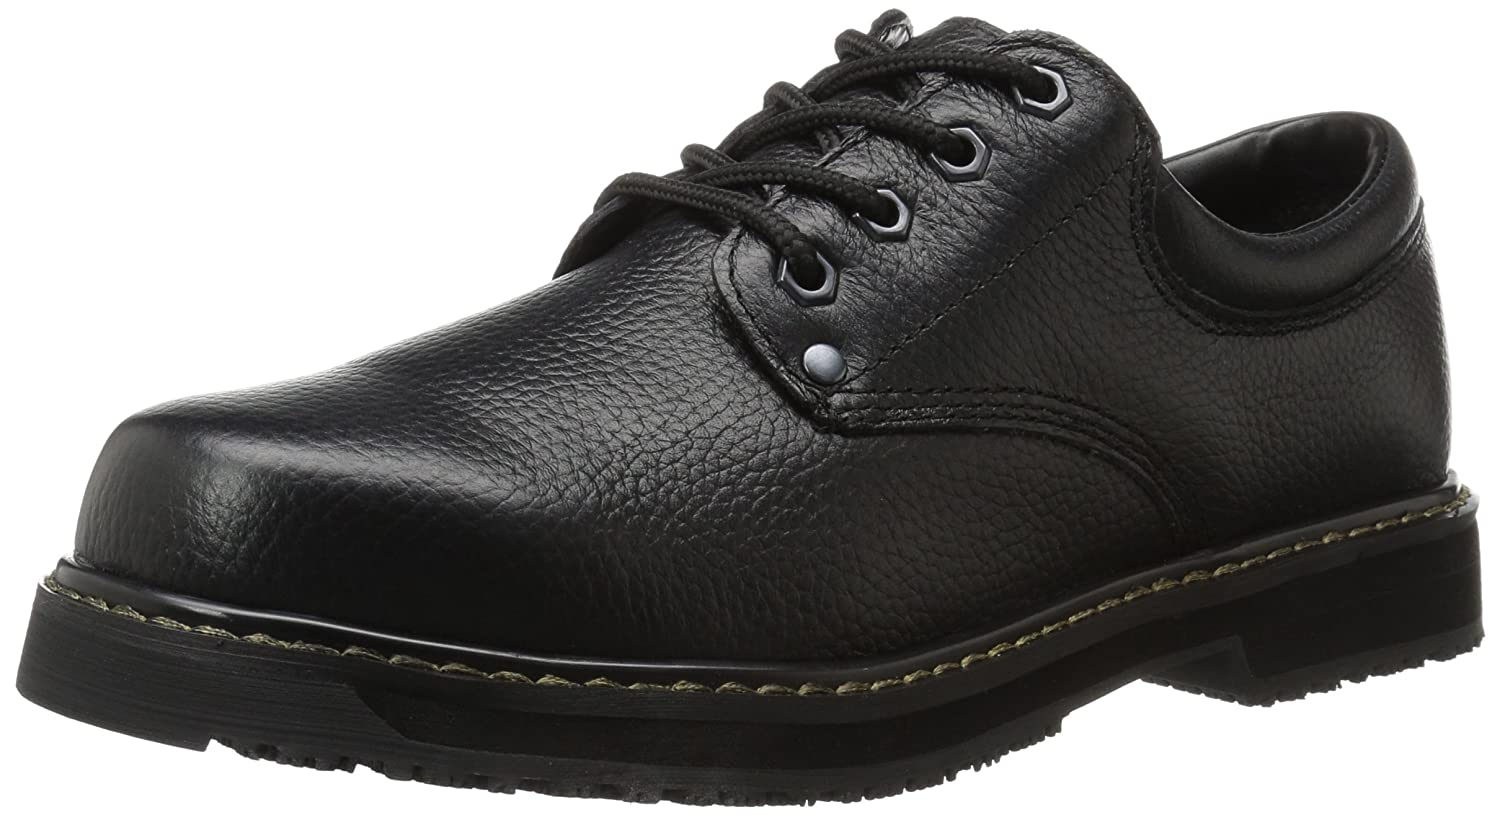 Dr. Scholl's Men's Harrington Work Shoe Dr. Scholl's Shoes Harrington-M